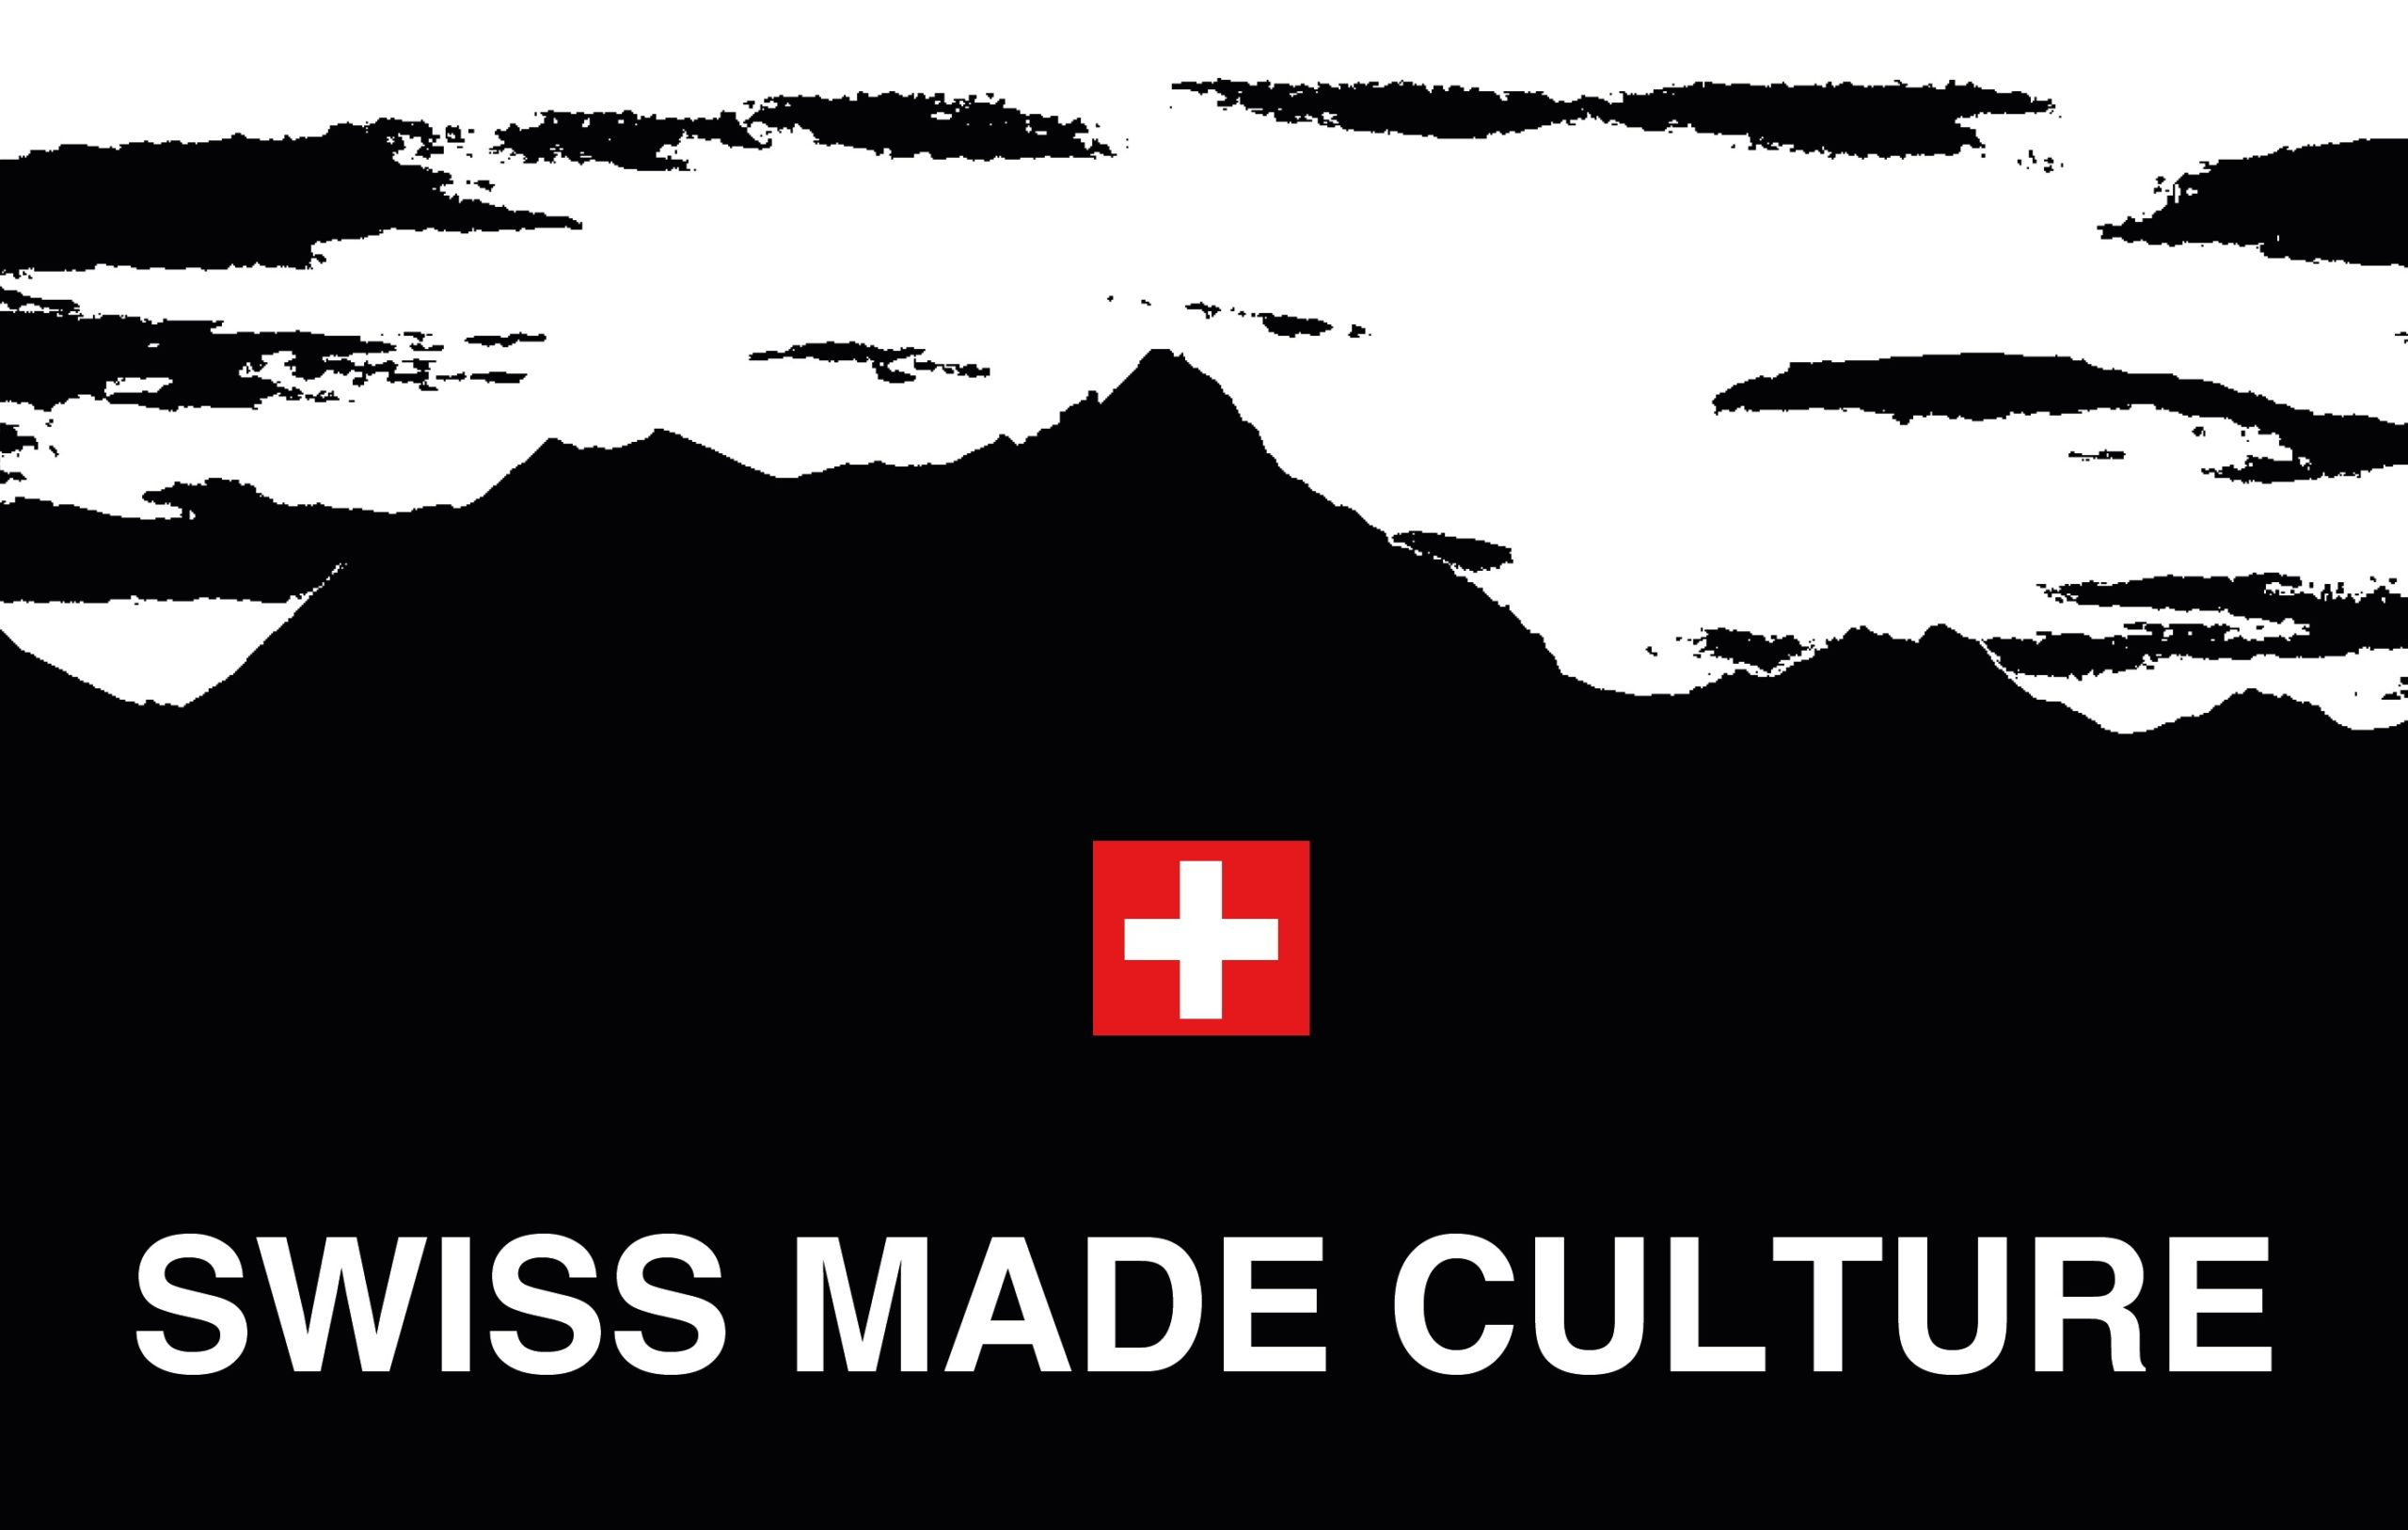 Swiss Made Culture